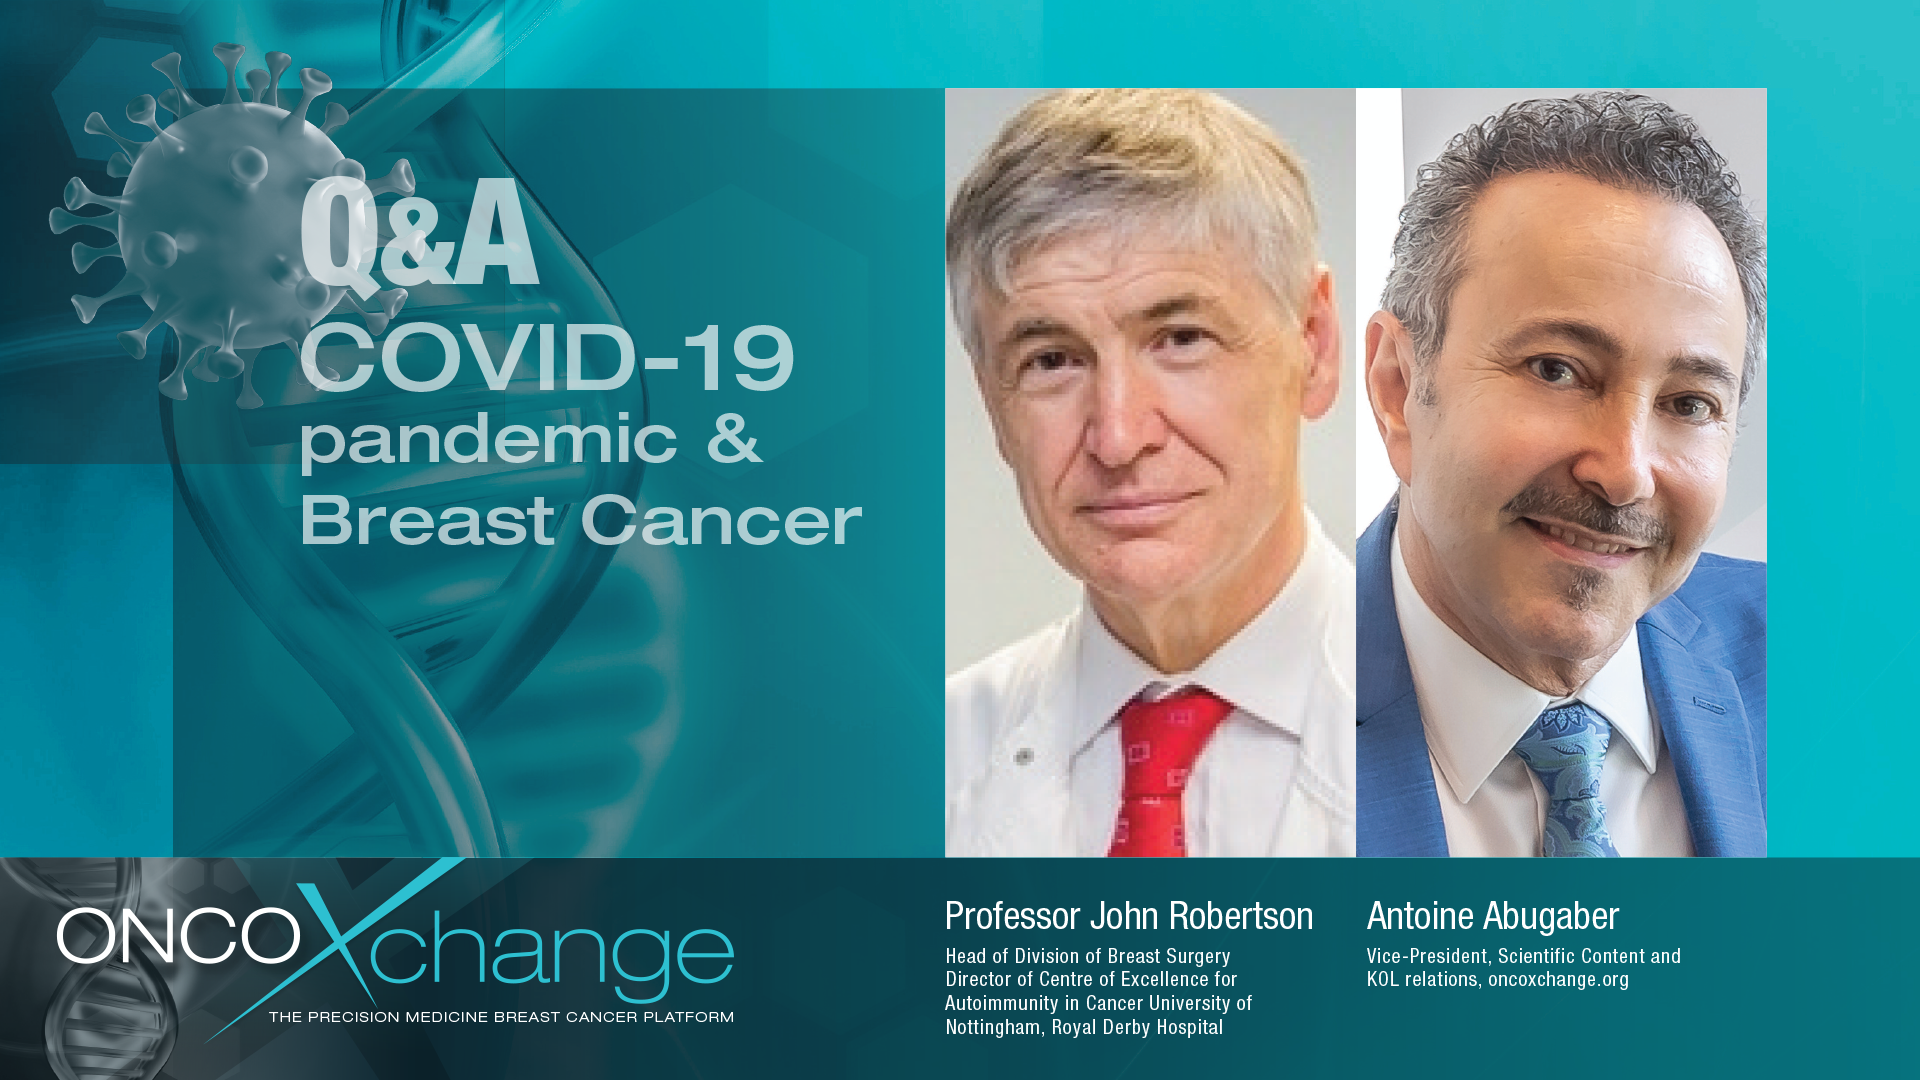 COVID-19 pandemic and Changes in Breast Cancer Management in UK (Q&A)